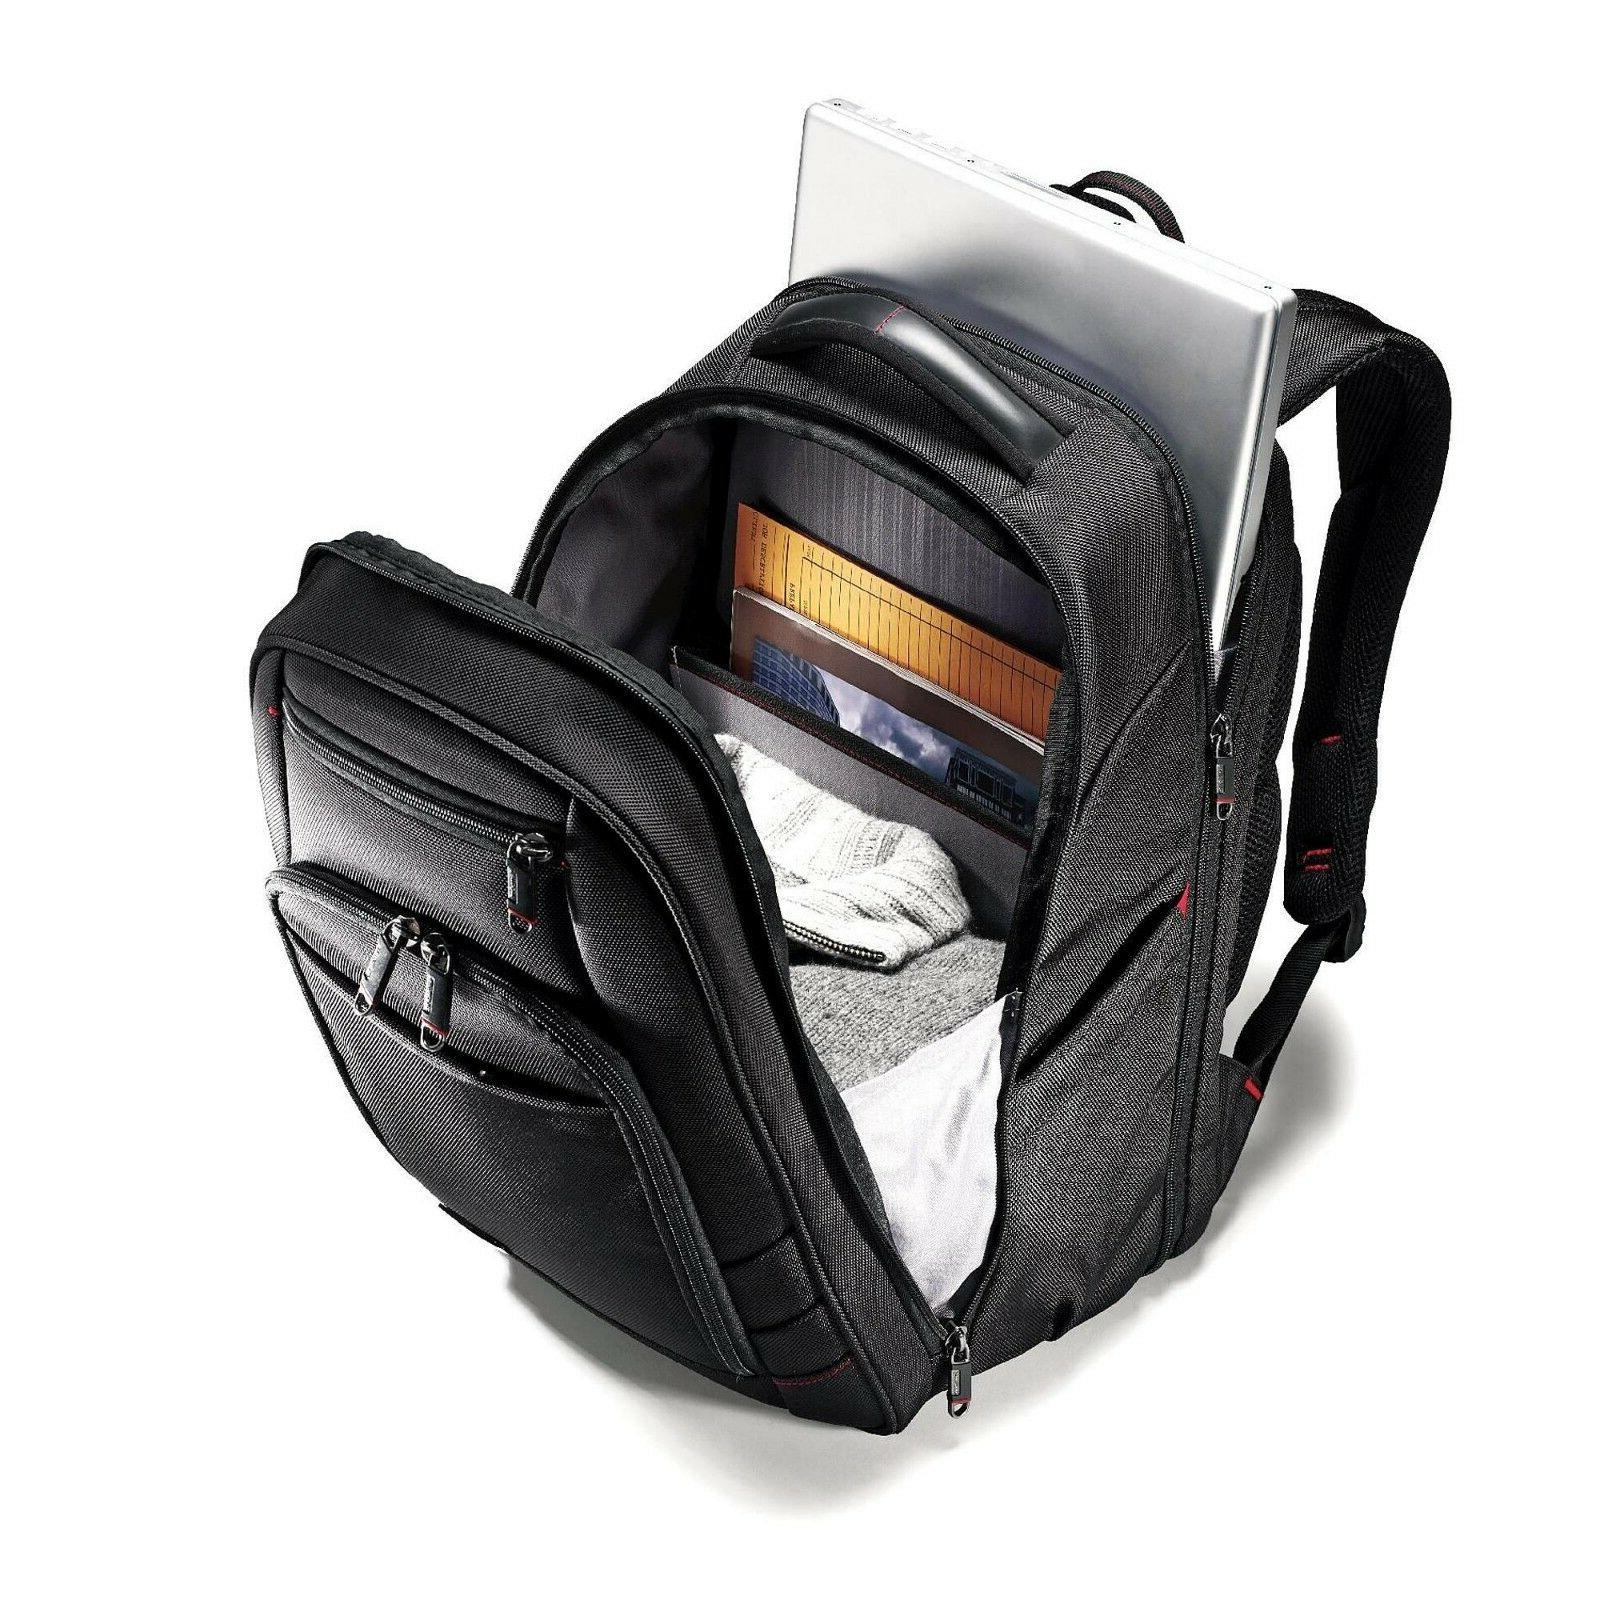 New Xenon adjustable Laptop Backpack